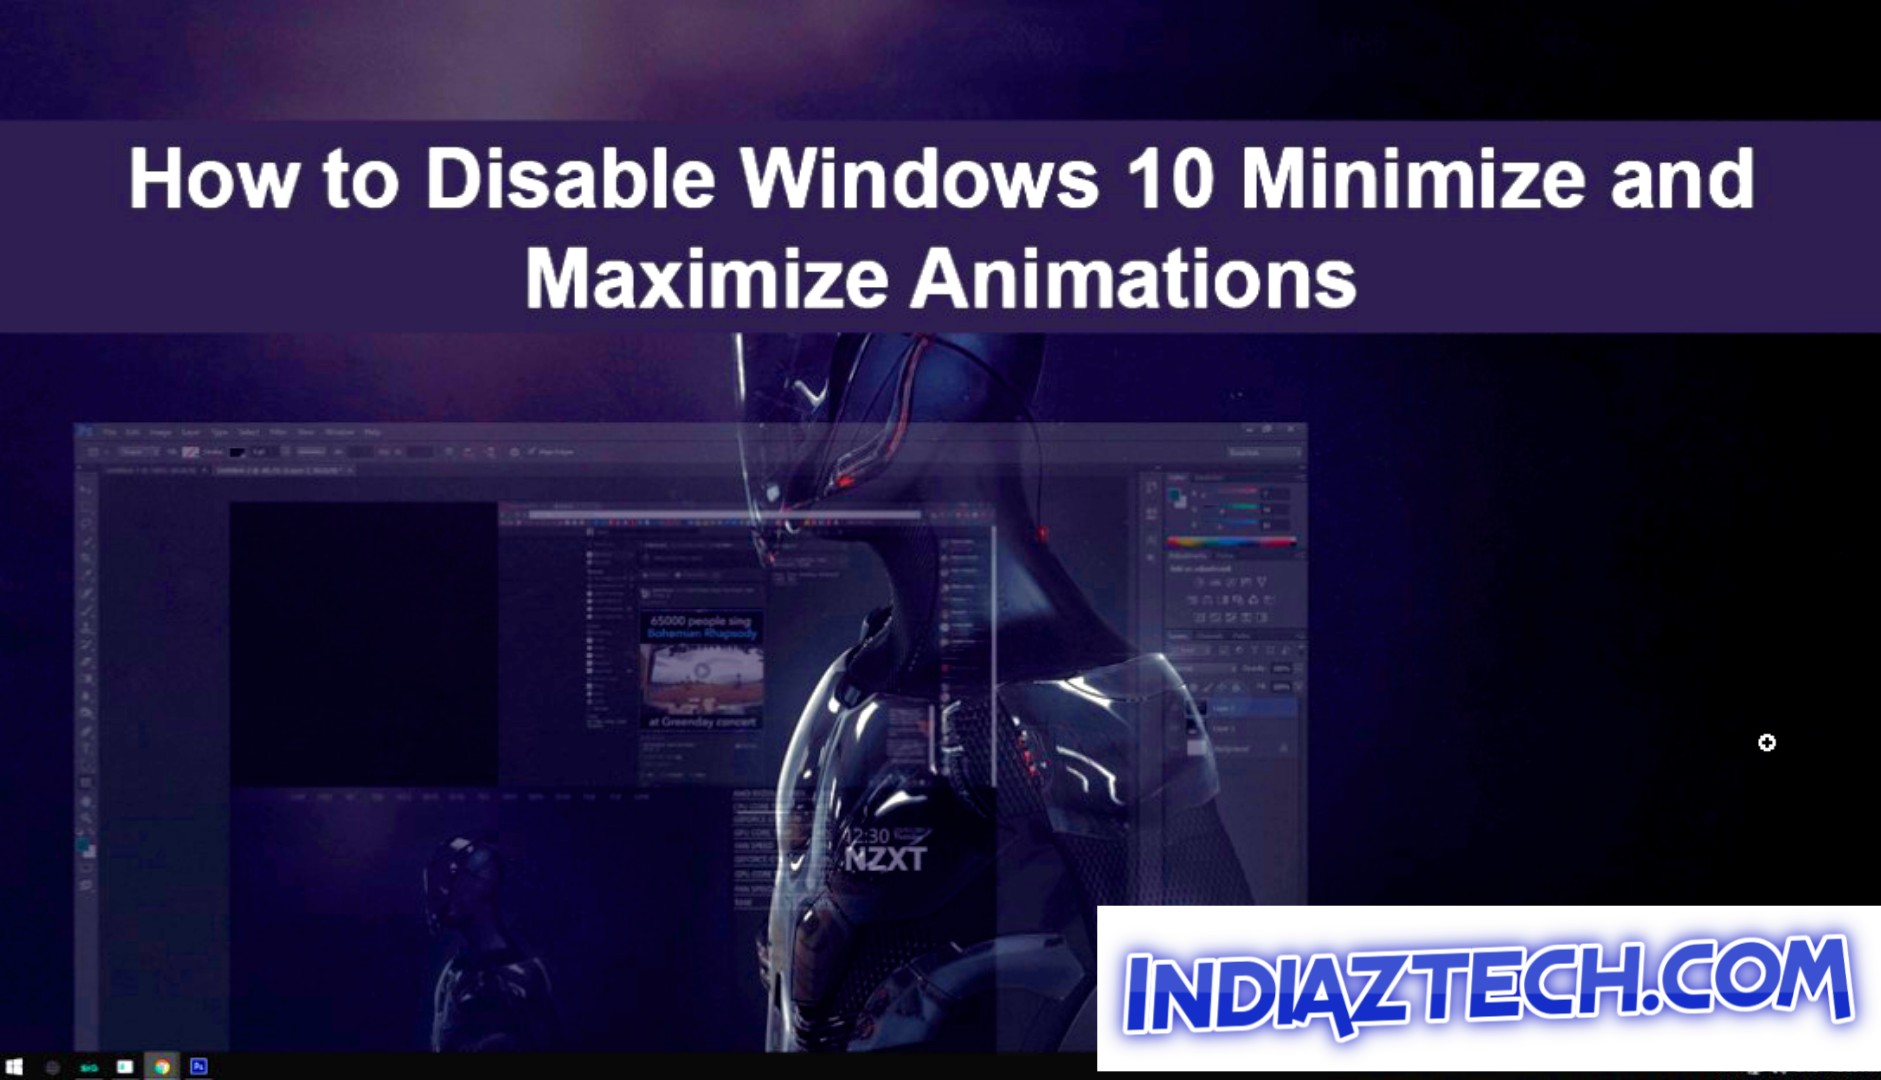 How to Make Windows 10 Animations Smoother ?